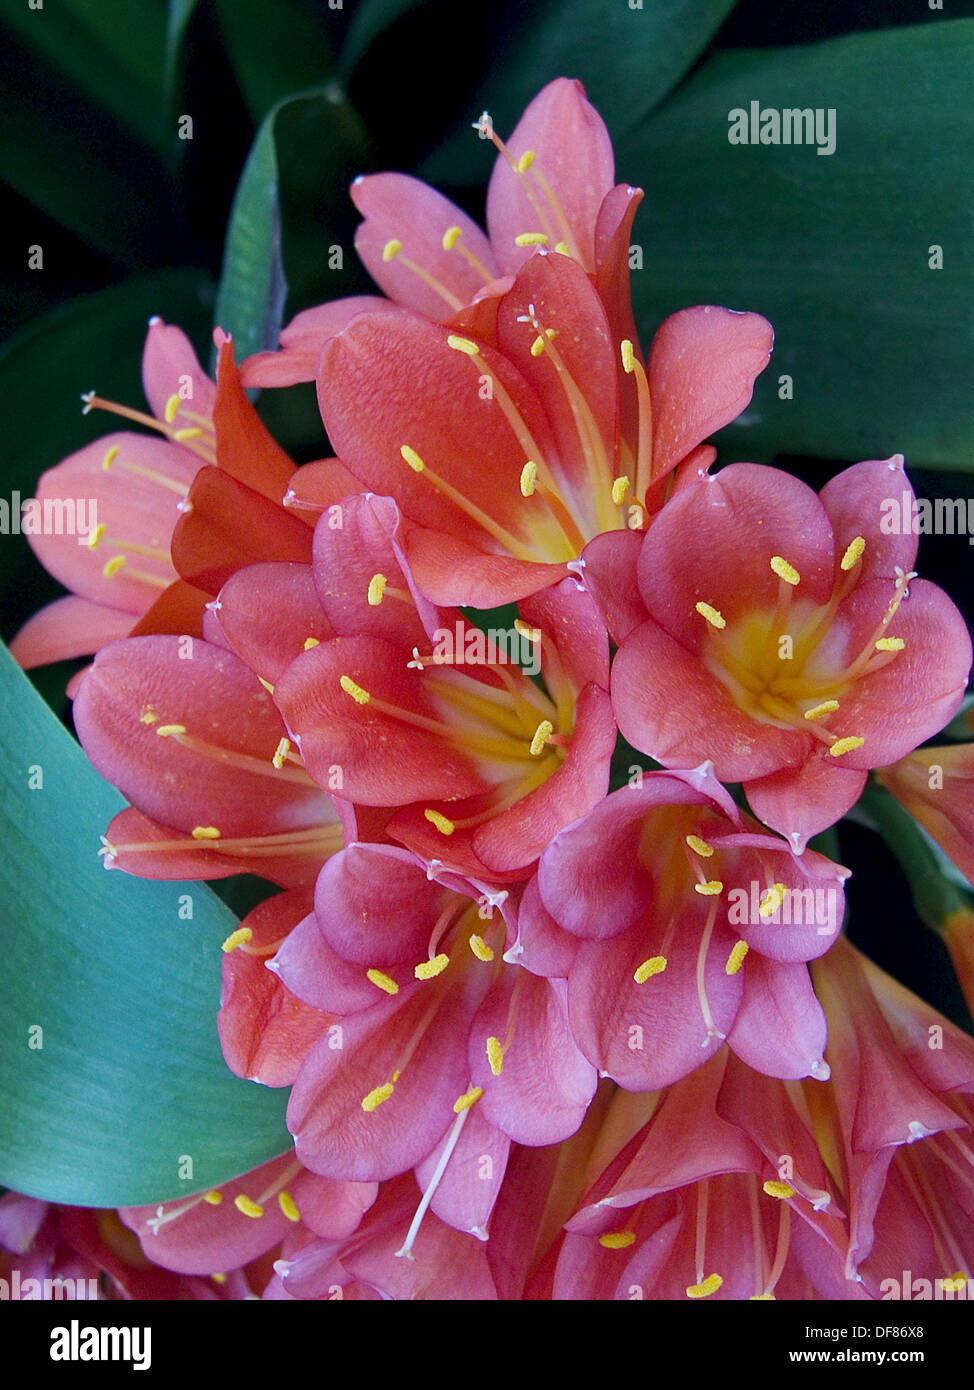 Clivia, close up of coral colored flowers Stock Photo: 61032000 - Alamy